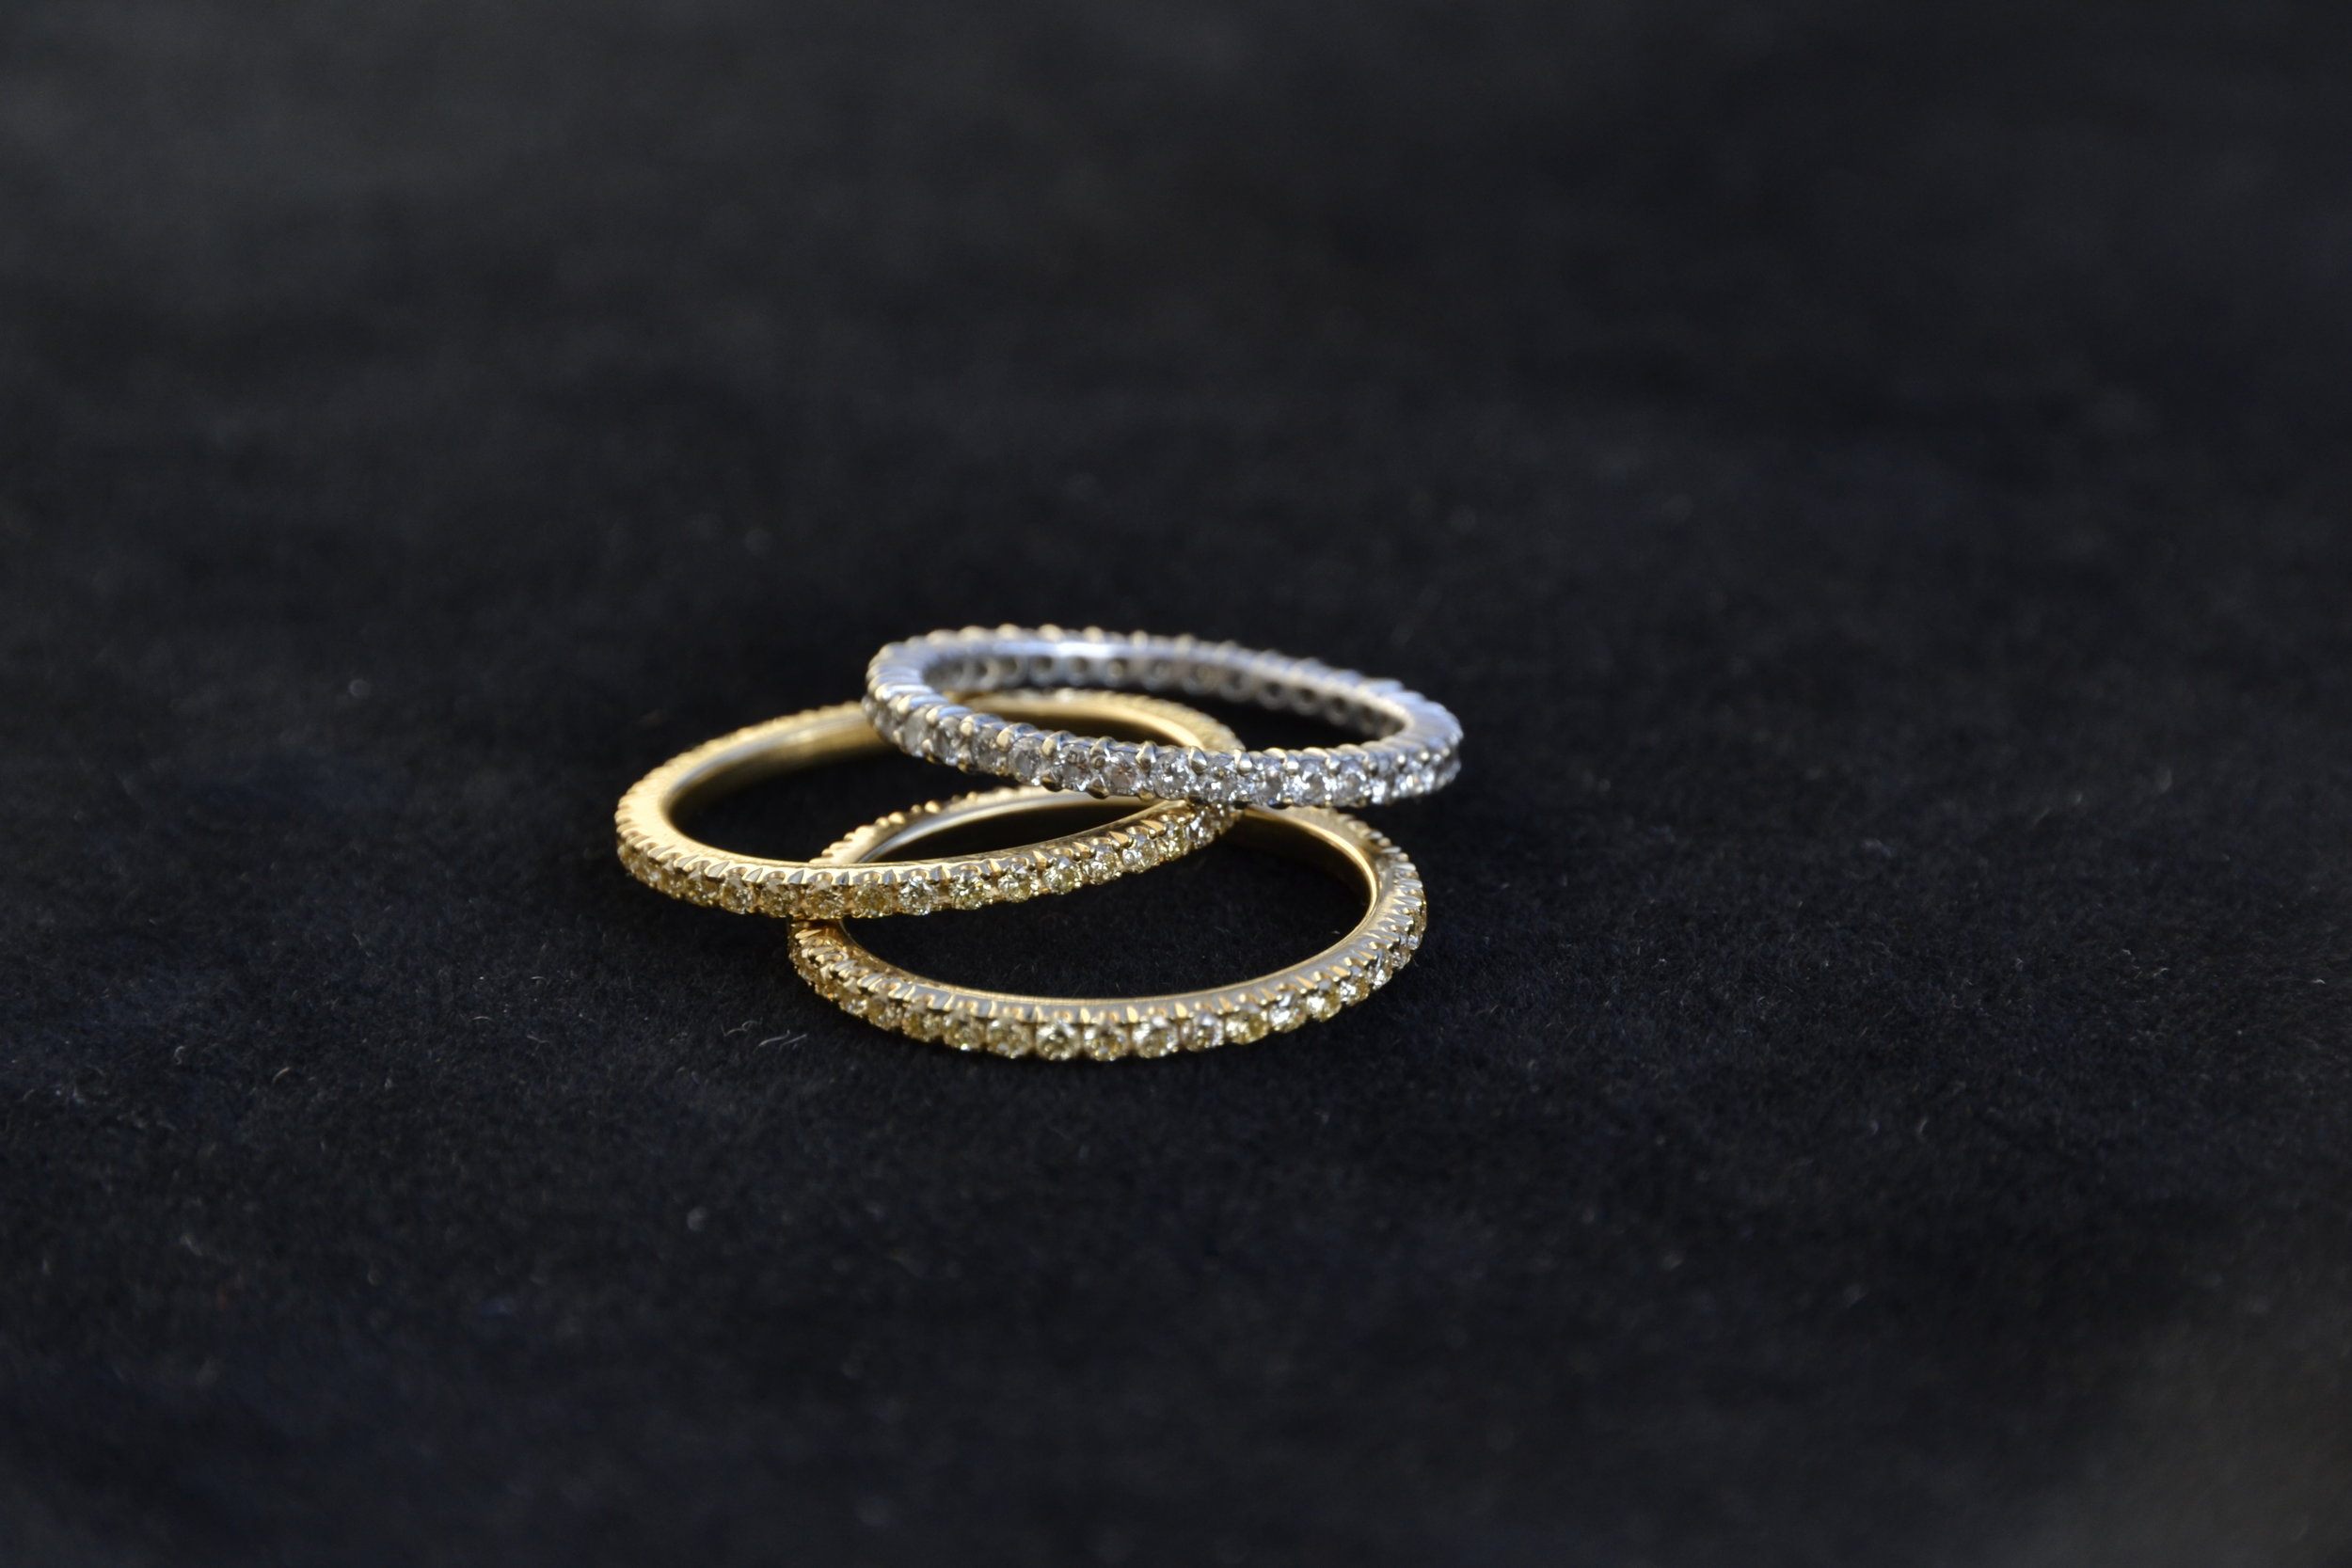 Eternity rings with white and yellow diamonds